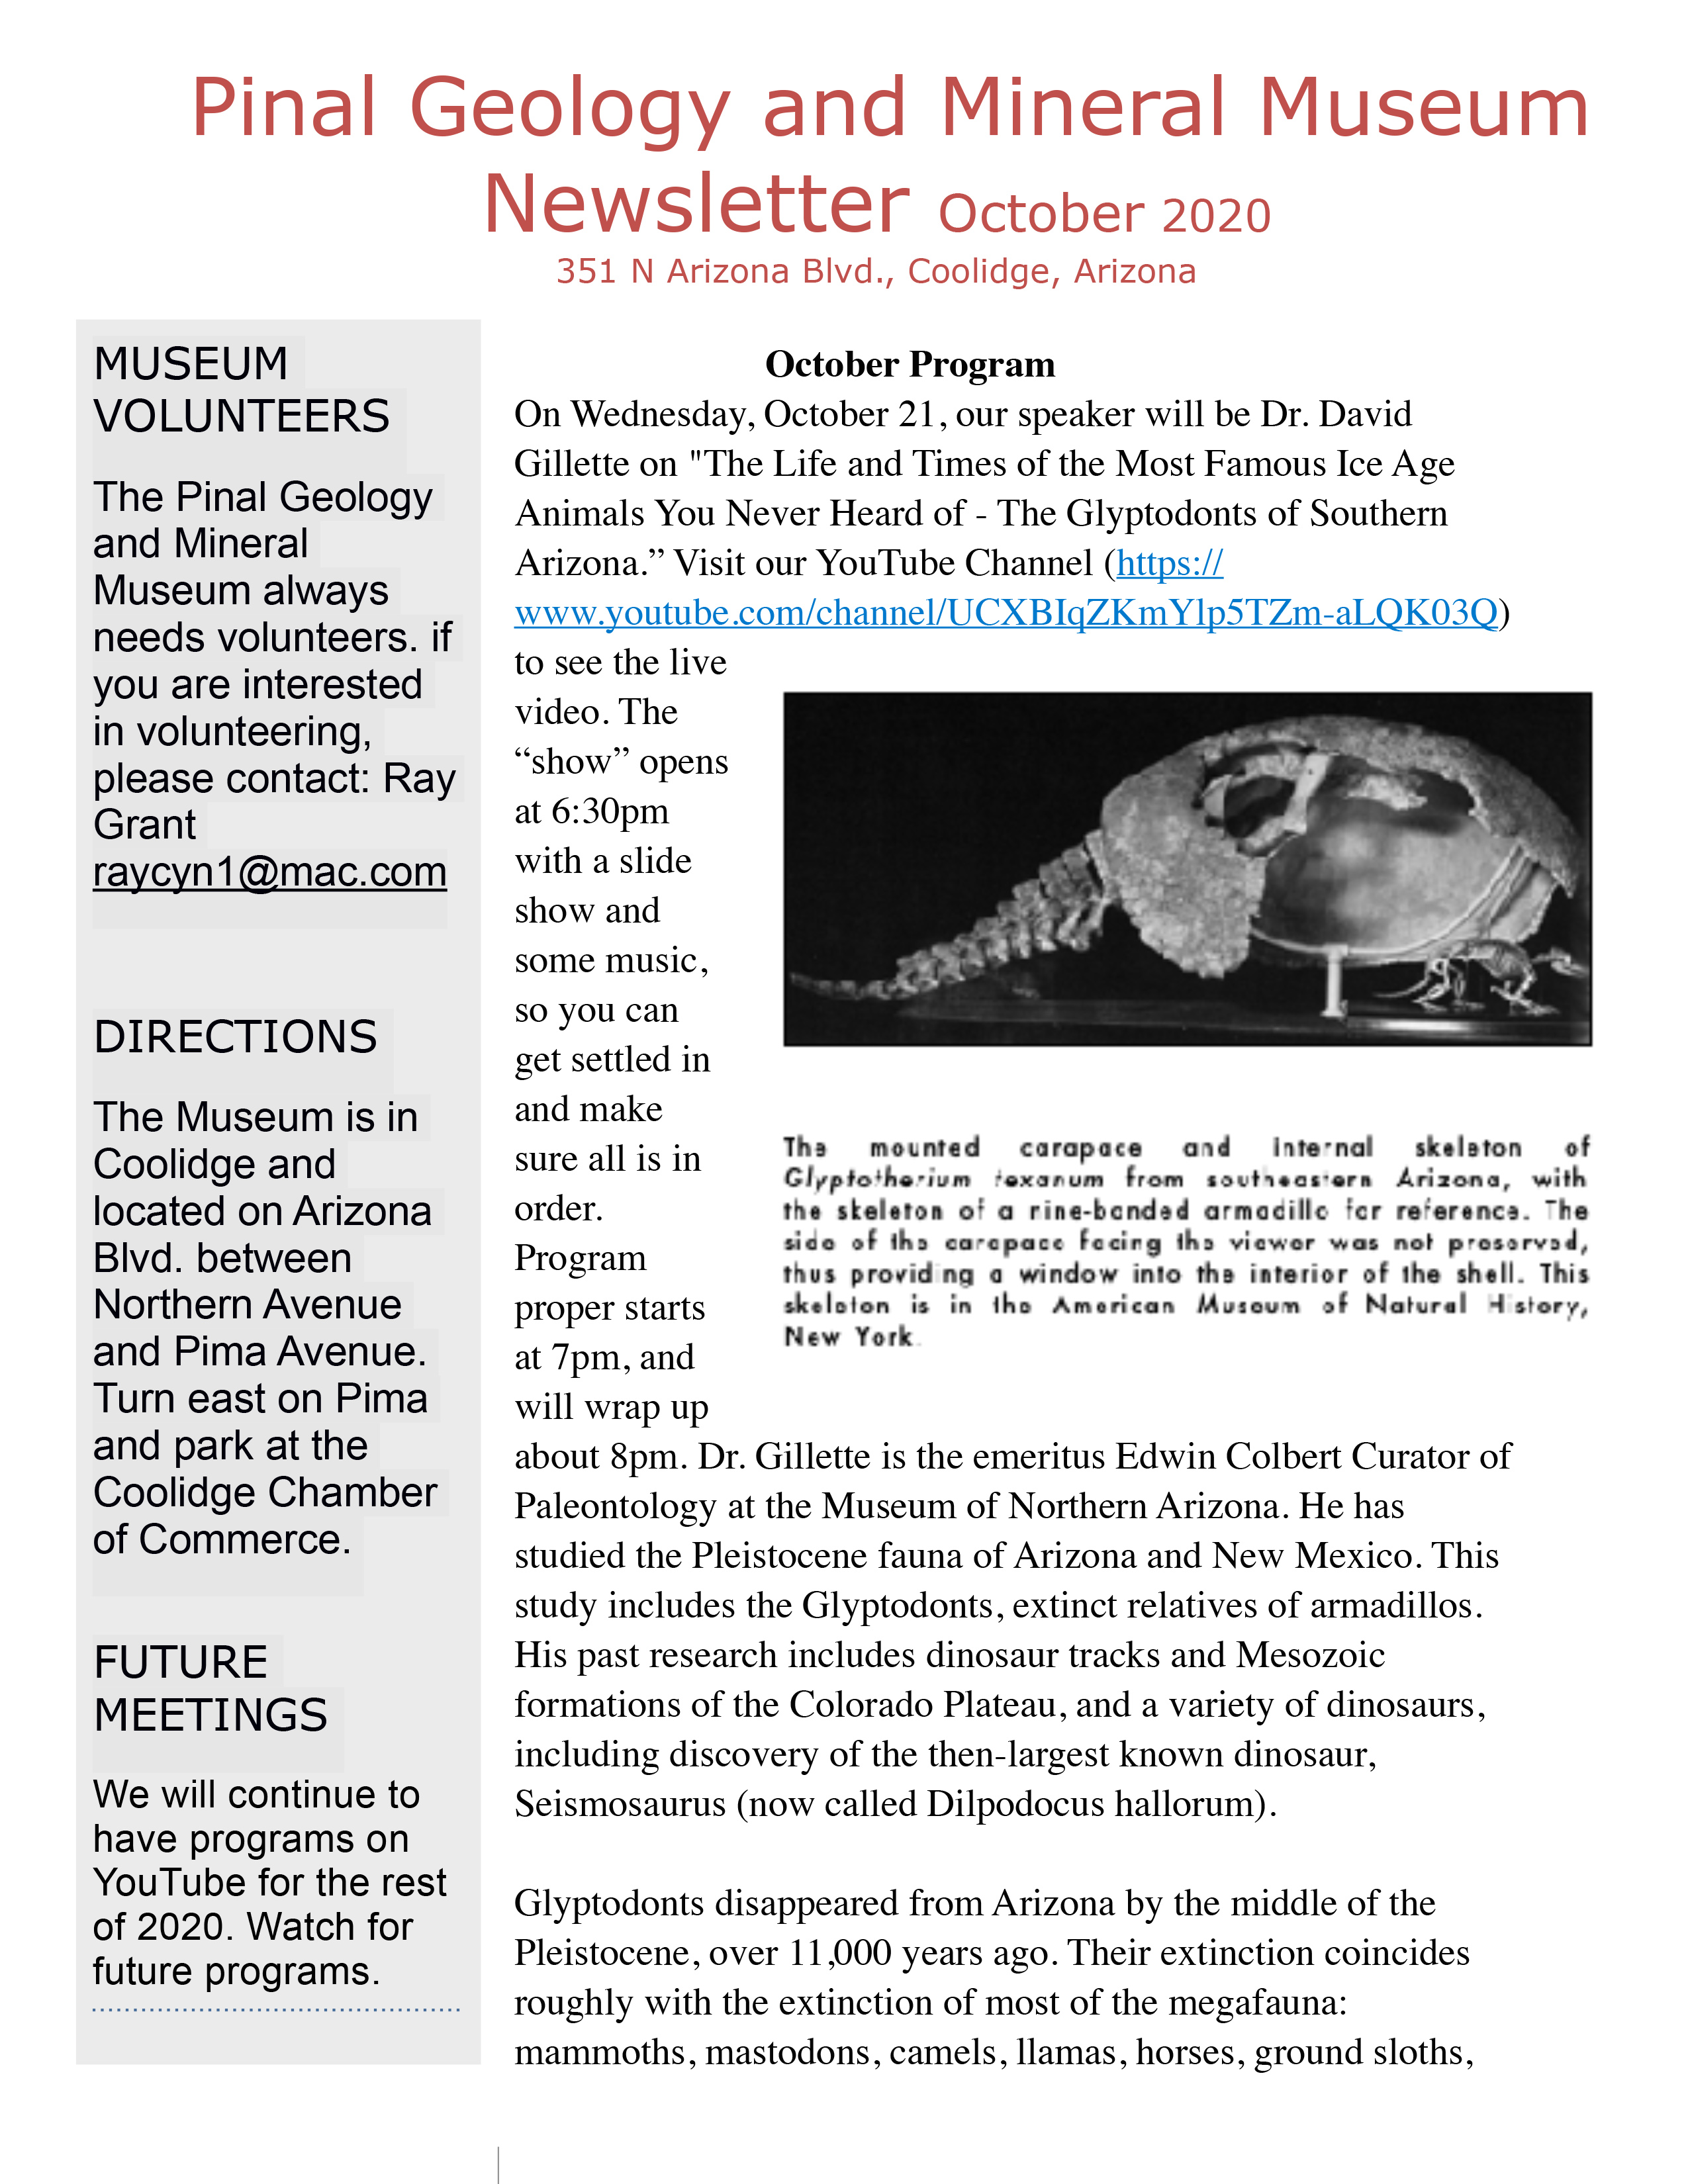 Newsletter October 2020 page 1